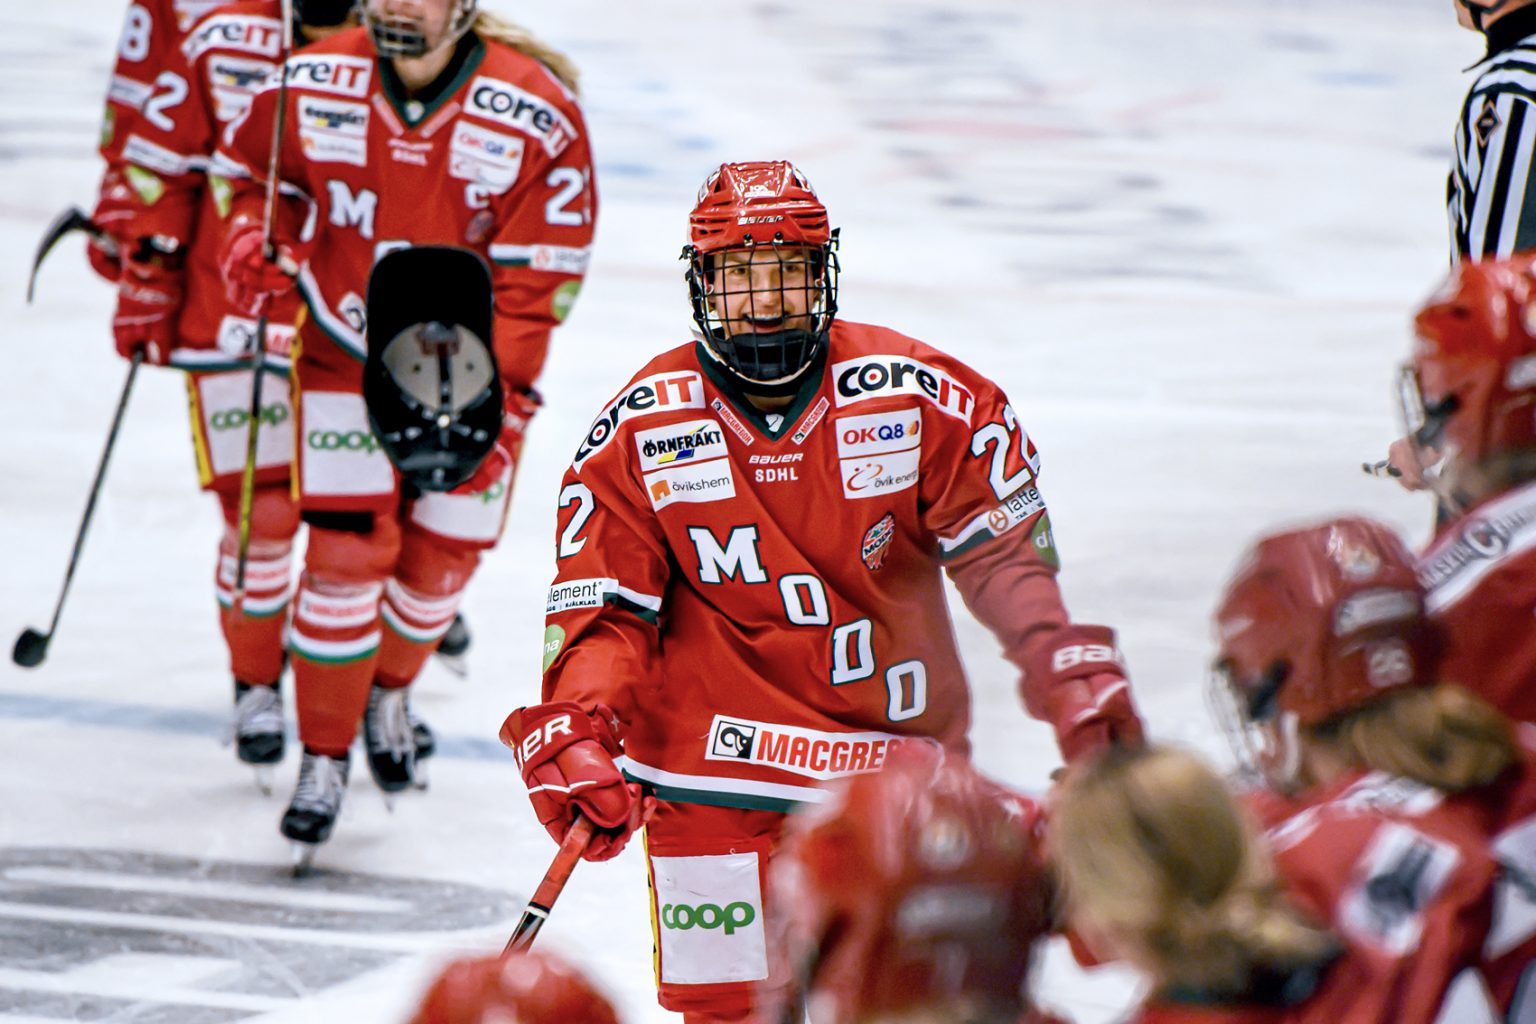 In 2020, former U of R Cougars star Jaycee Magwood signed to play for MODO in Örnsköldsvik, Sweden. MODO is one of 10 teams in the Svenska damhockeyligan league, the top level of women's hockey in Sweden. (Photo by Mats Bekkevold.)